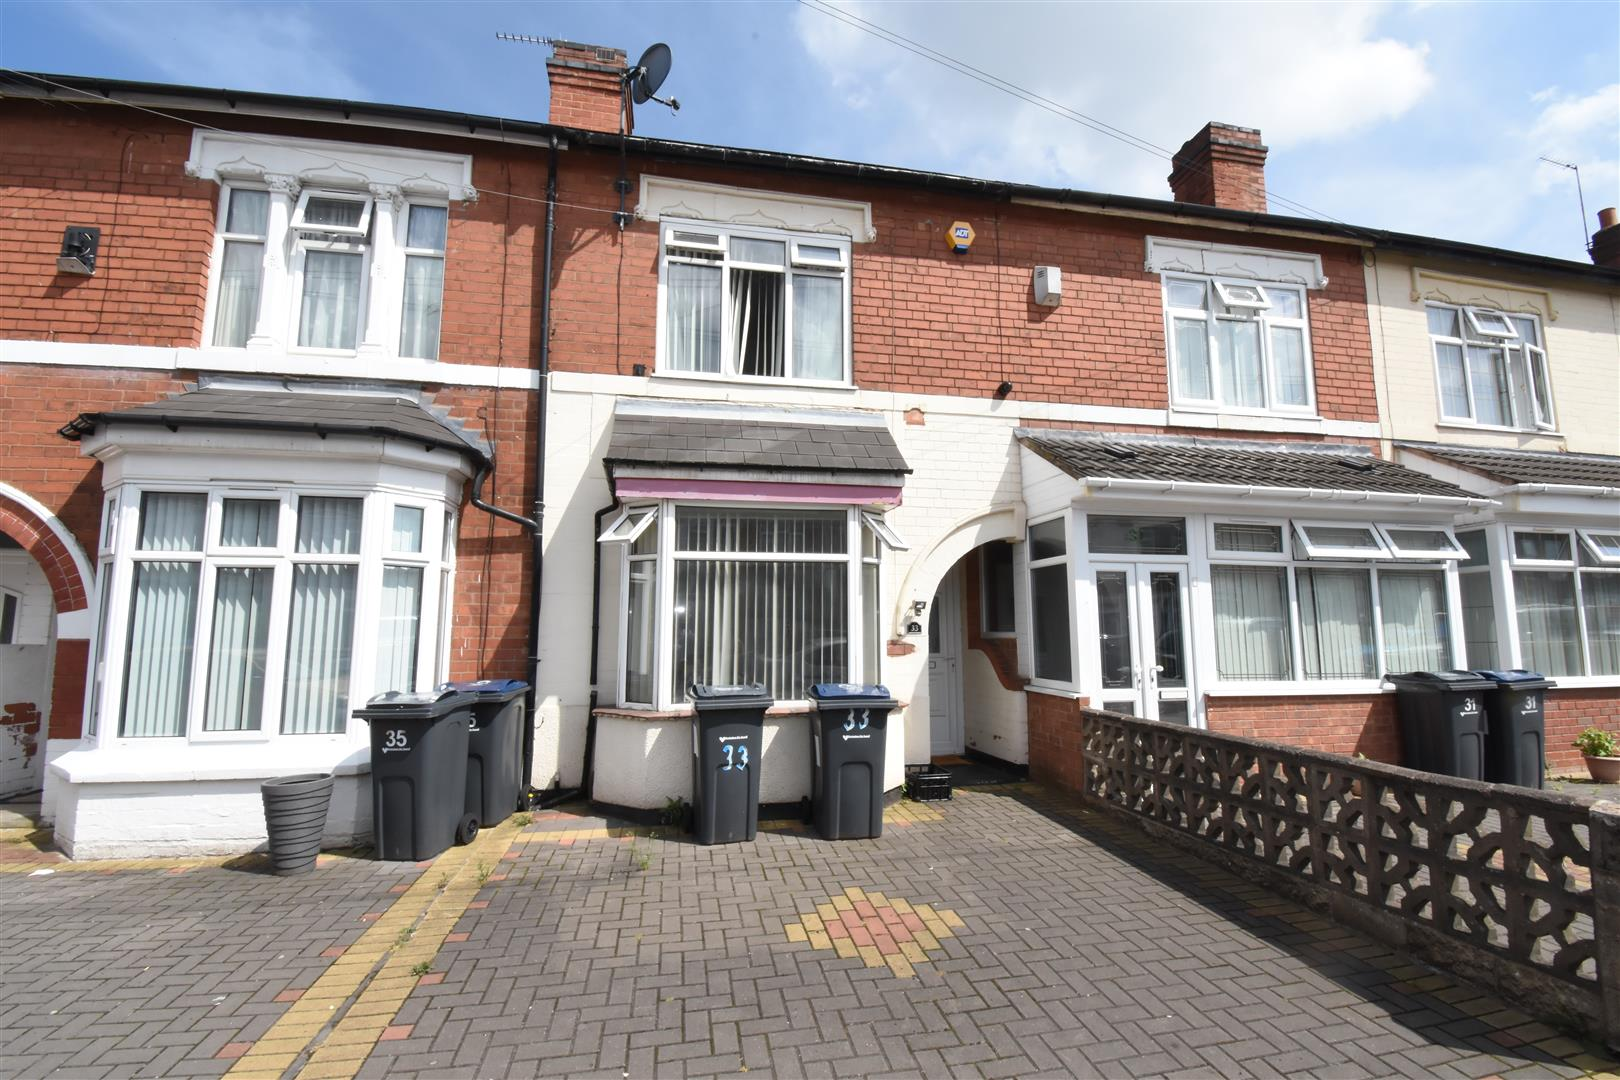 3 bed house for sale in Southern Road, Birmingham 1